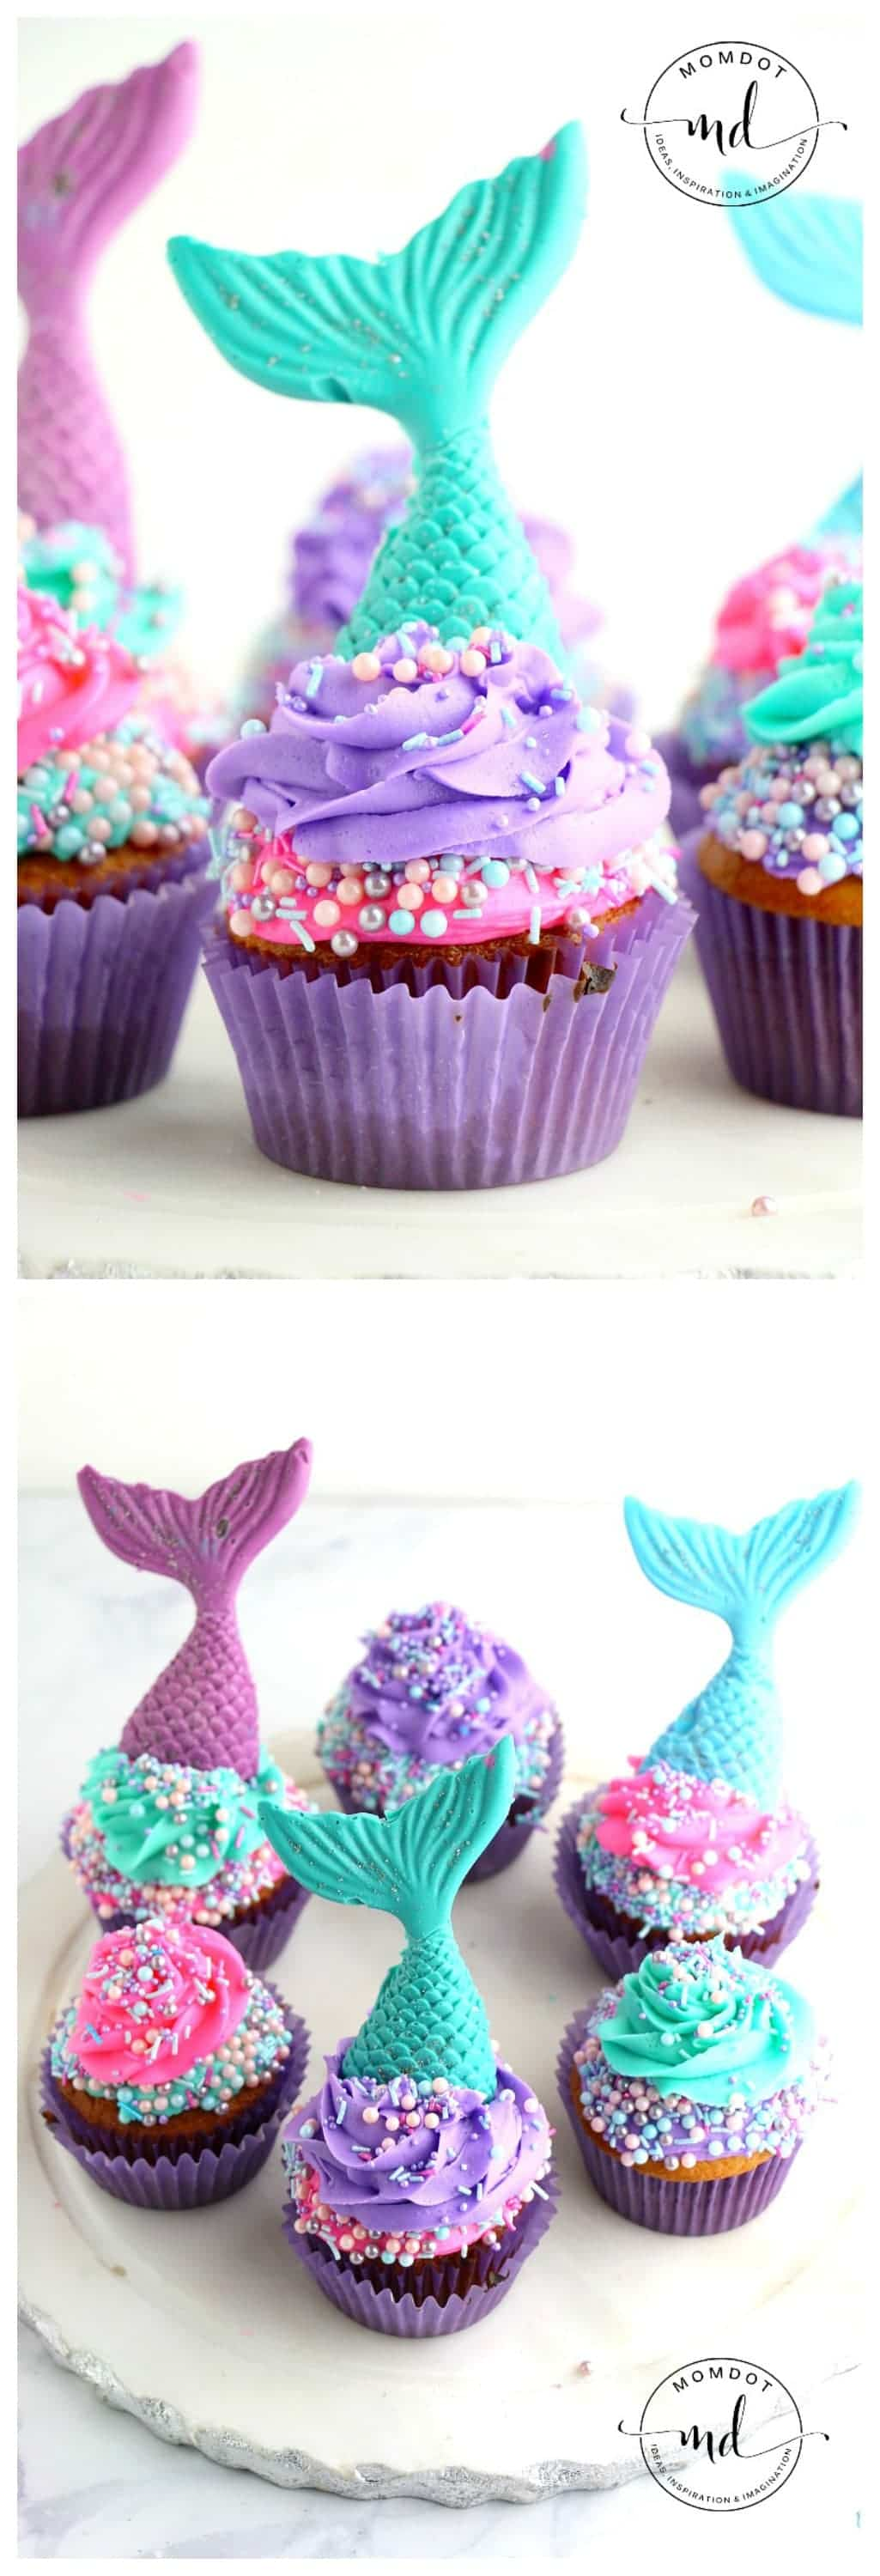 Mermaid Cupcake Recipe | Mermaid Cupcake Tail Topper Tutorial